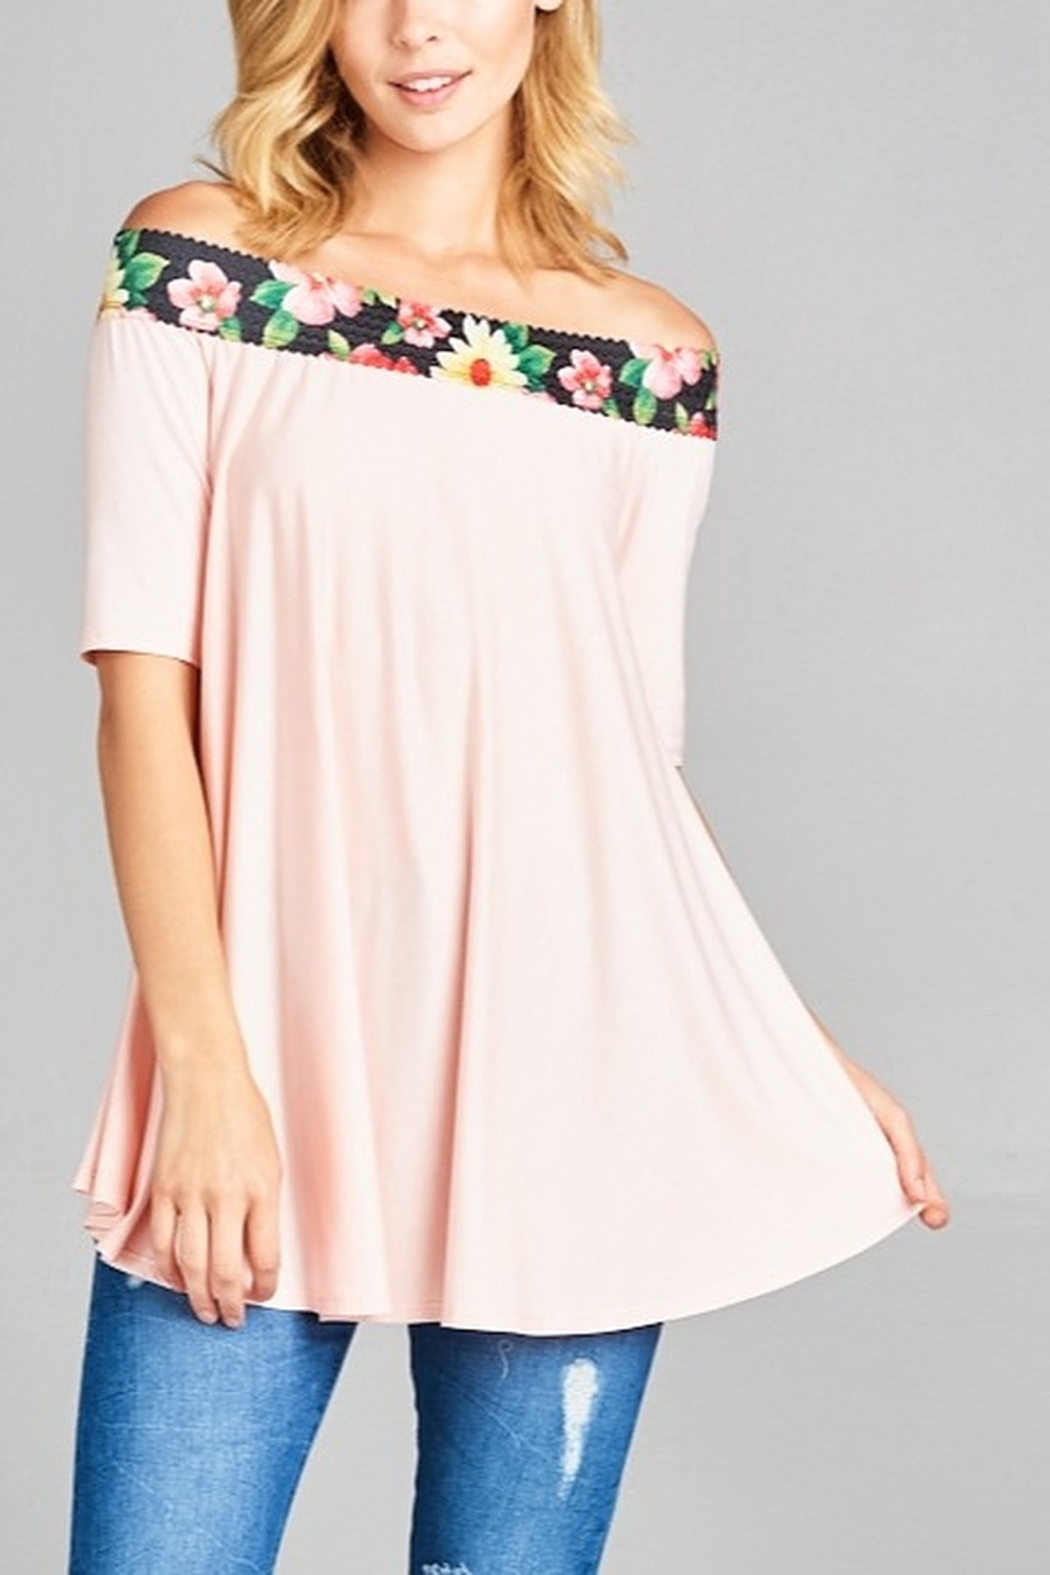 Lyn-Maree's  Touch of Floral Off The Shoulder Tee - Main Image